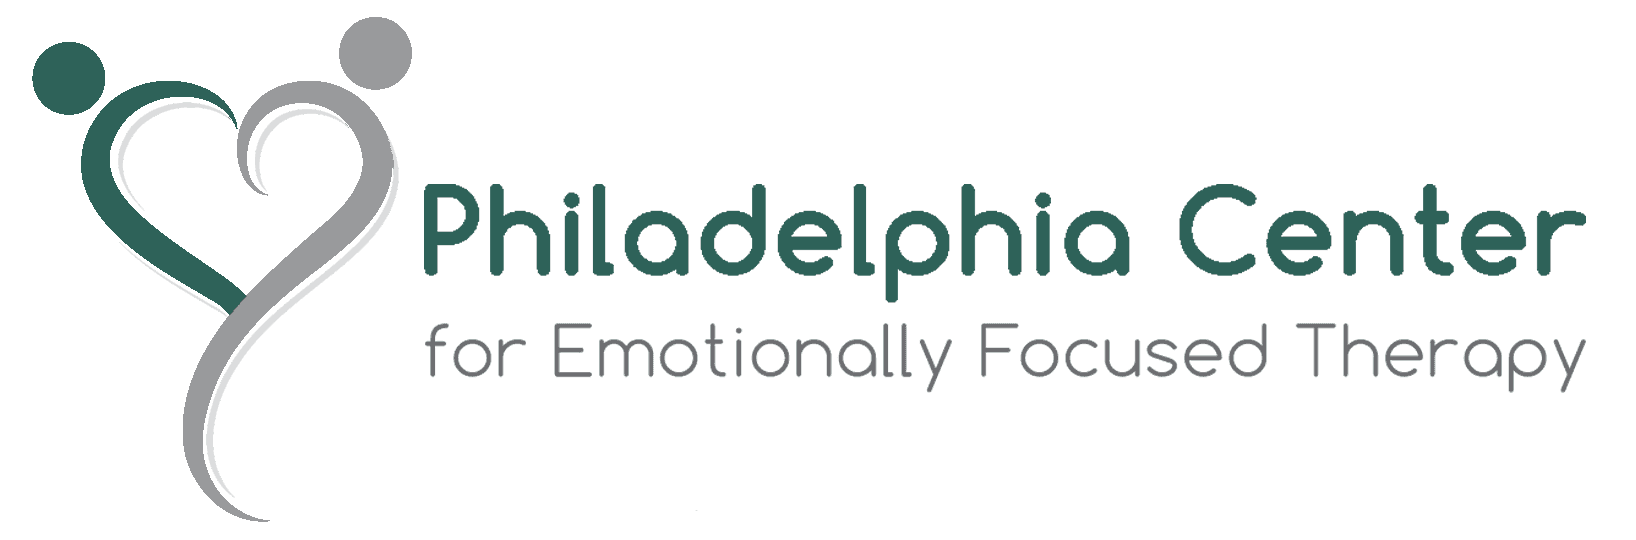 Philadelphia Center for Emotionally Focused Therapy